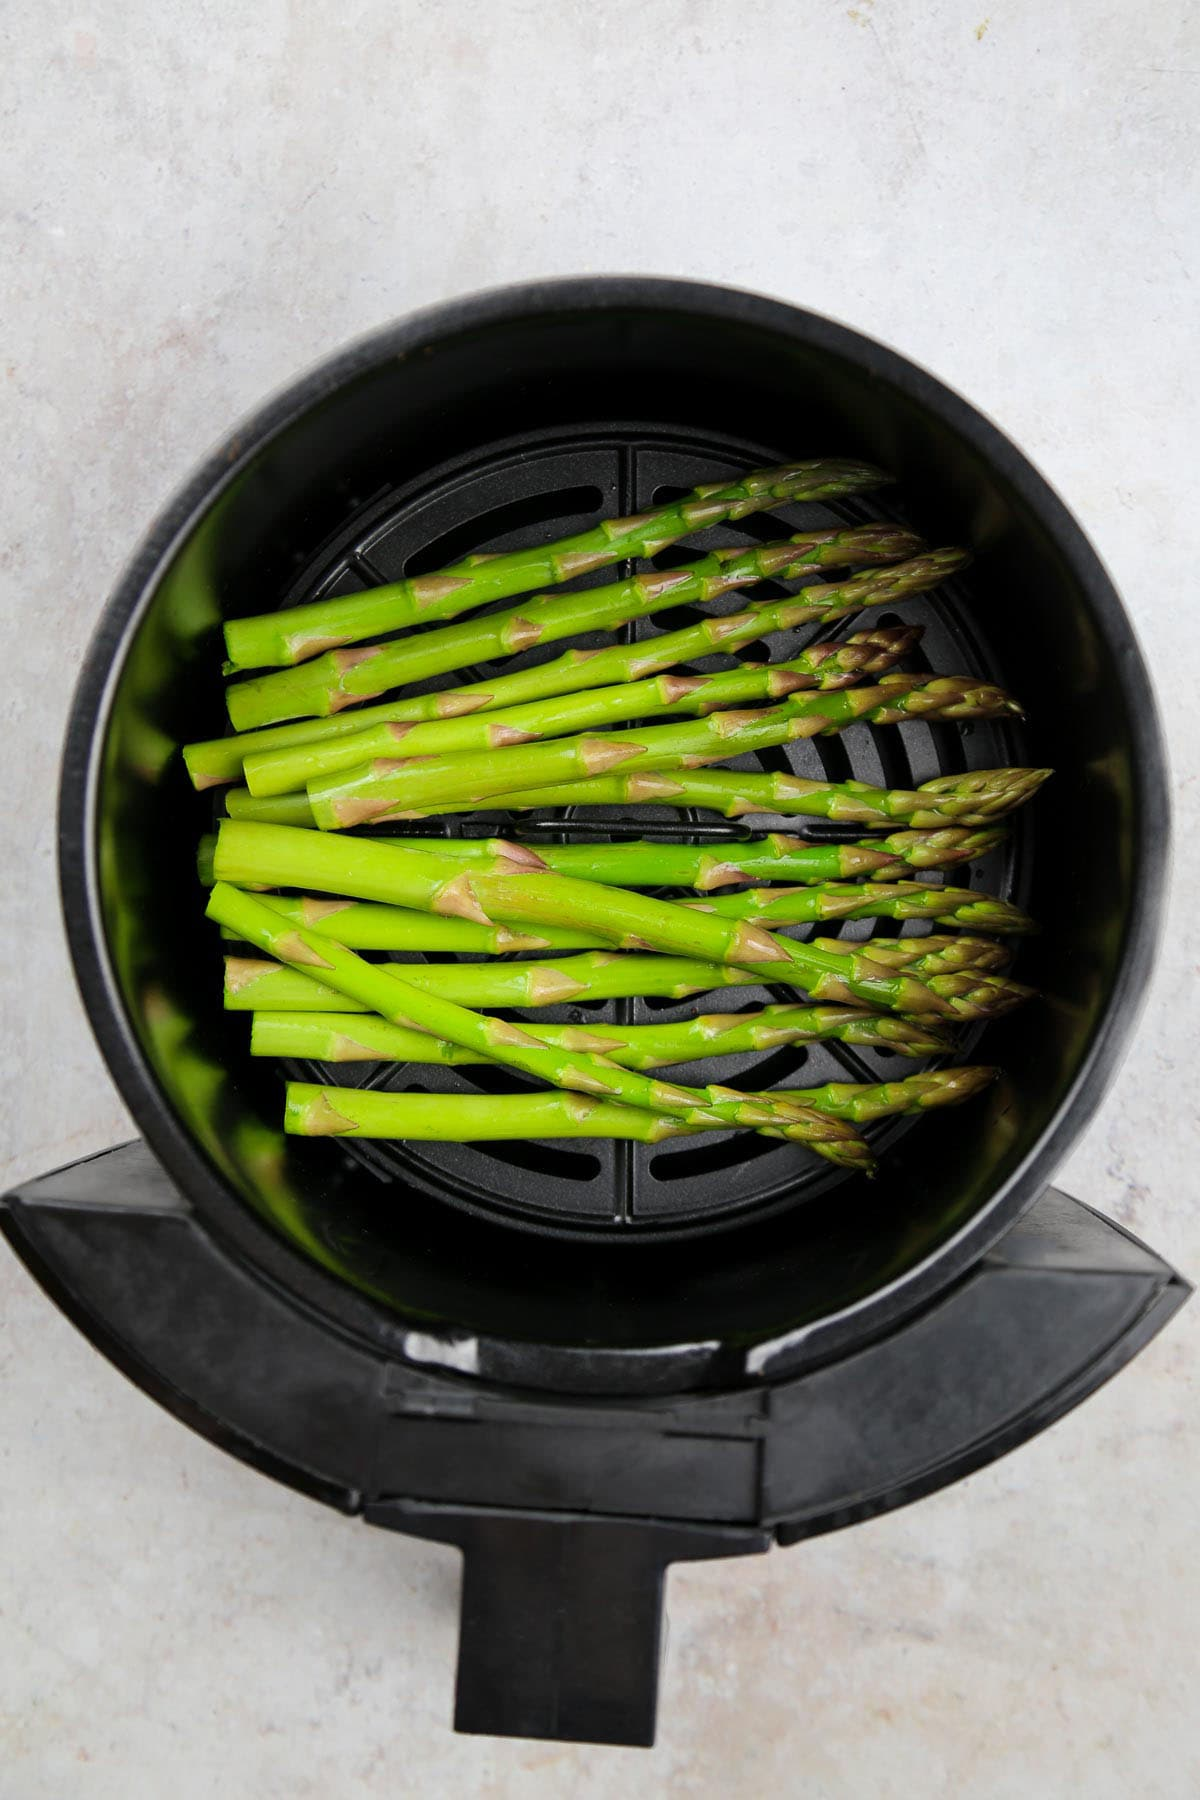 Fresh asparagus tips placed in the air fryer basket